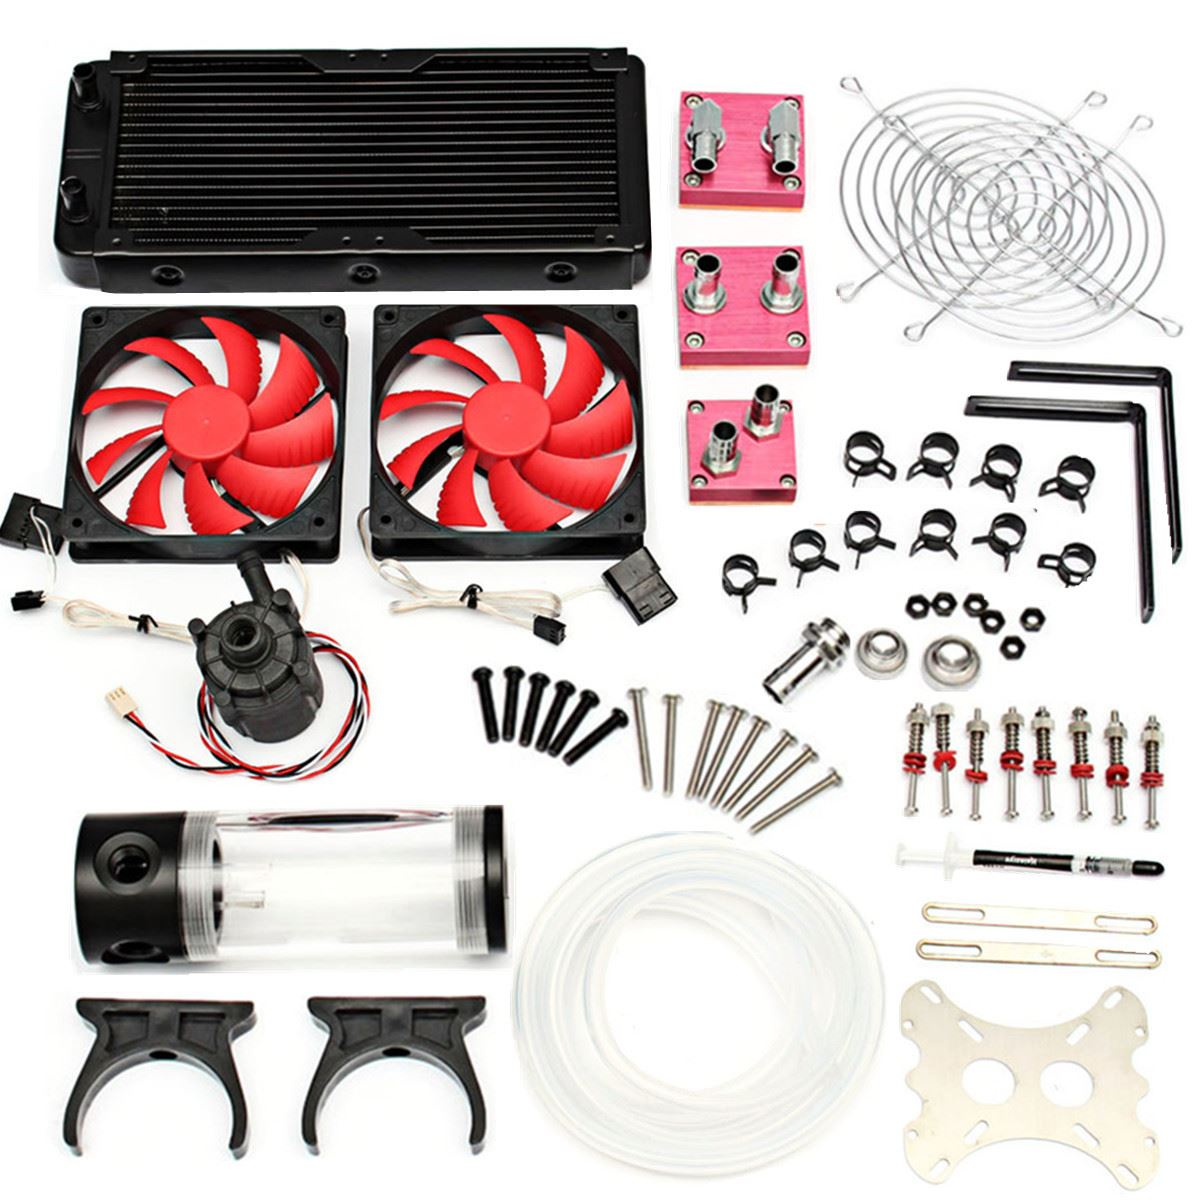 Water Cooling Kit 240 Radiator CPU GPU Block Pump Reservoir Tubing Barb 3/8 ID For Intel LGA 1150 1155 1151 computer CPU 6162 63 1015 sa6d170e 6d170 engine water pump for komatsu